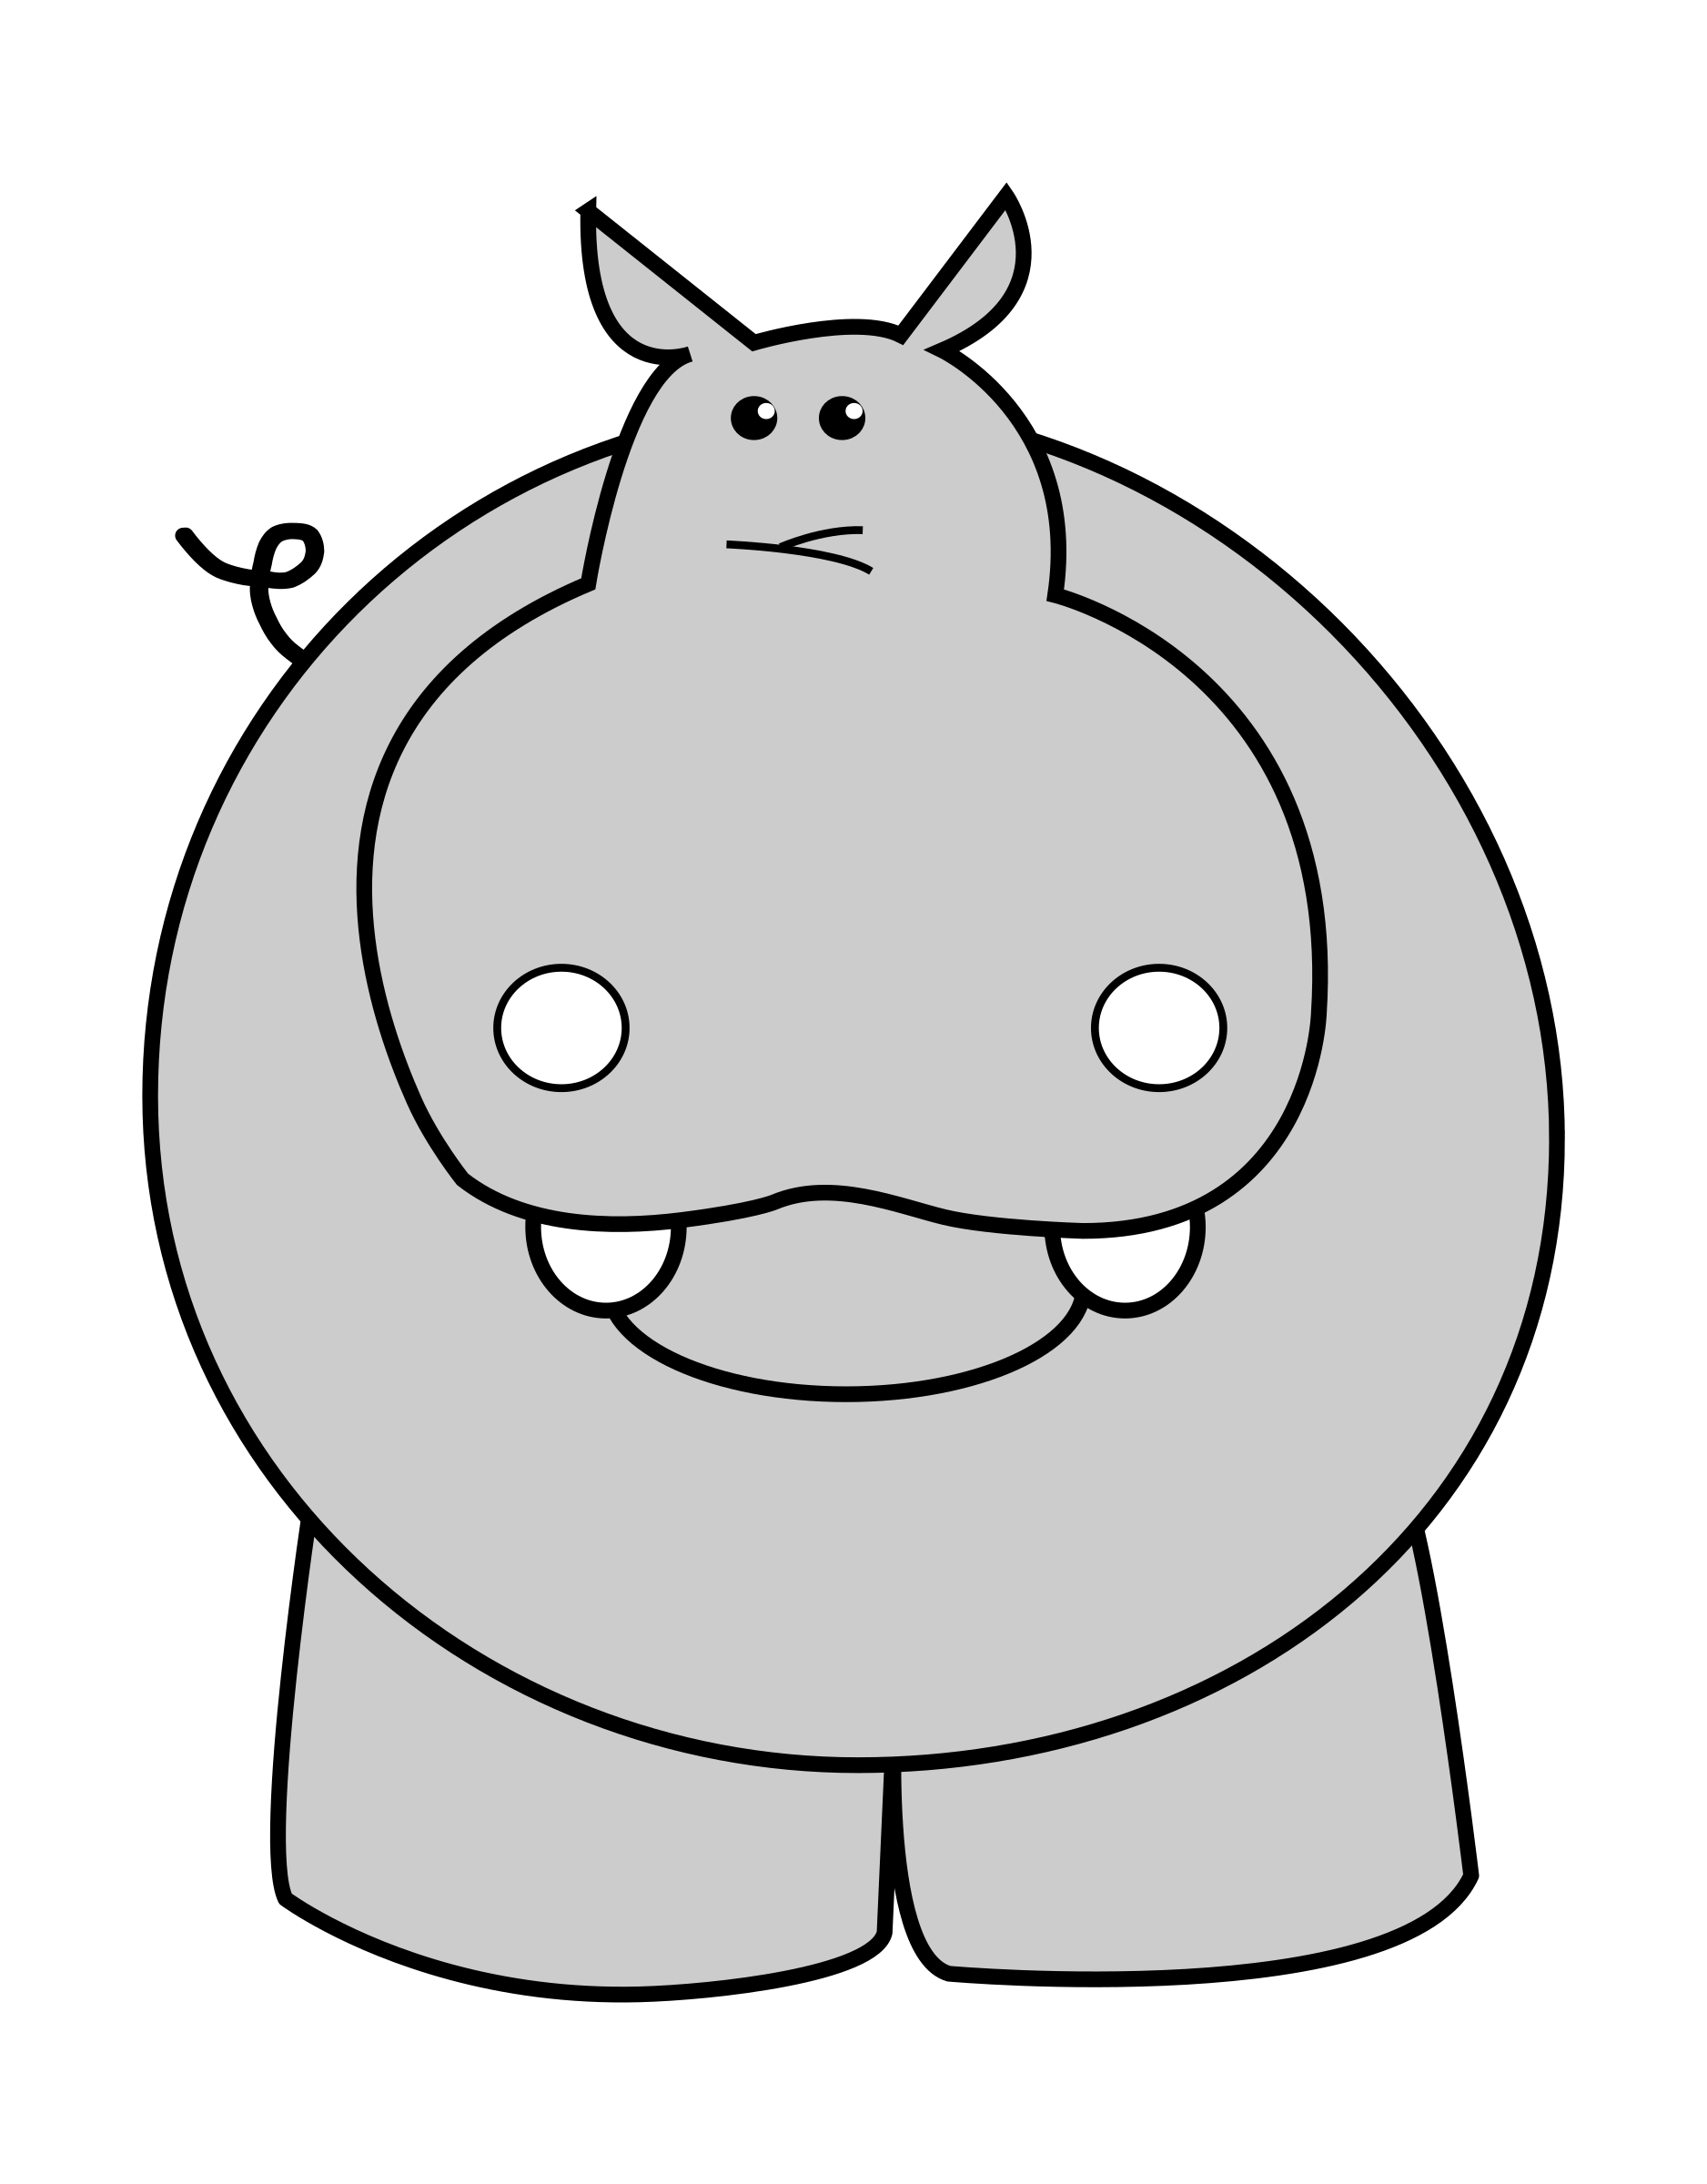 Hippo clipart wild animal. Big image png